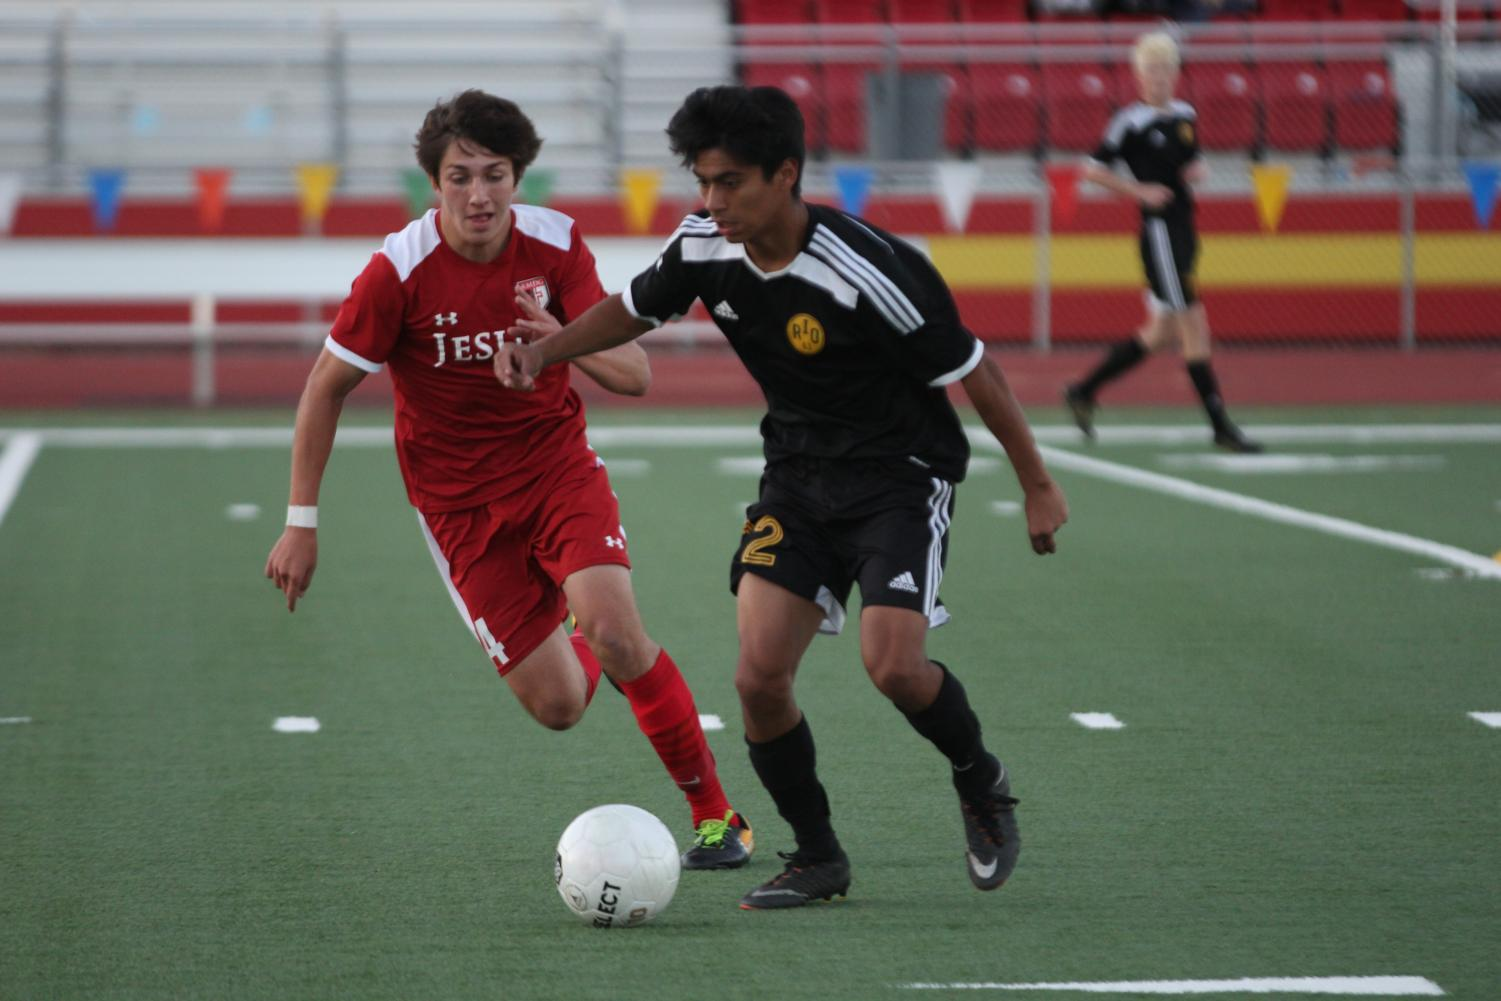 Sophomore Steven Barreto holds off the defender whiling looking for an open teammate to pass the ball to against Jesuit.